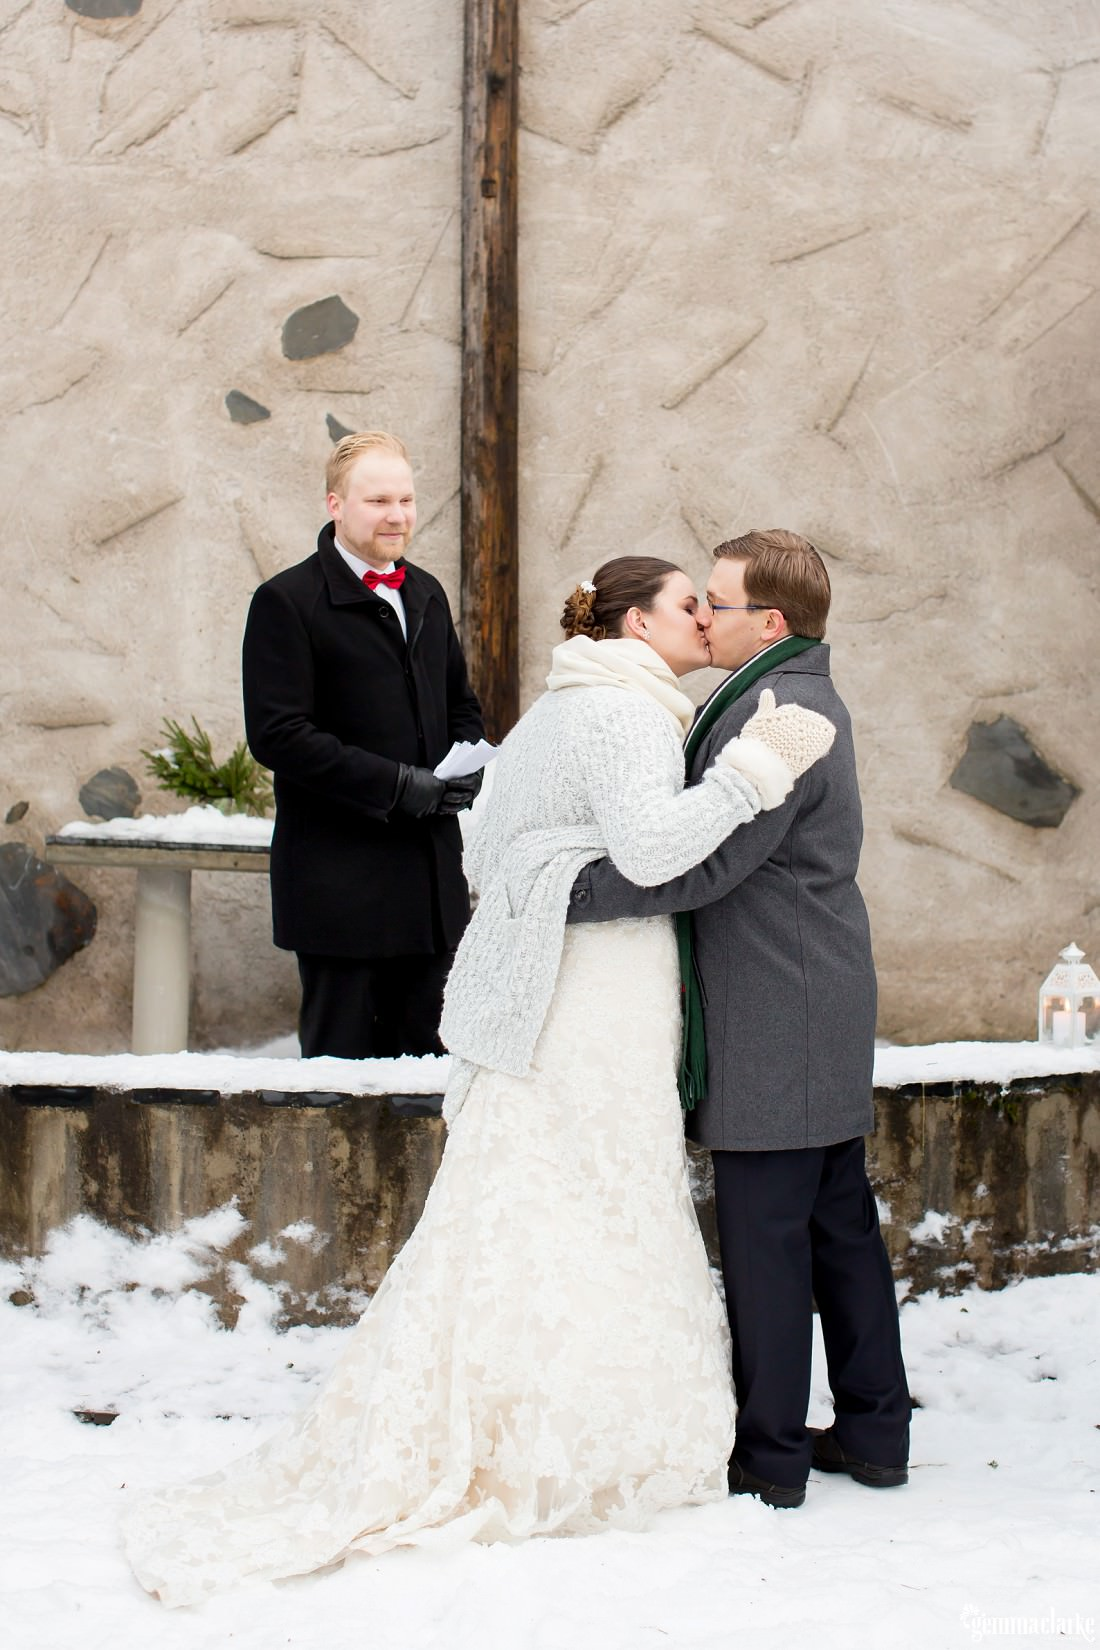 A wedding celebrant smiles as the bride and groom share a kiss at their wedding ceremony